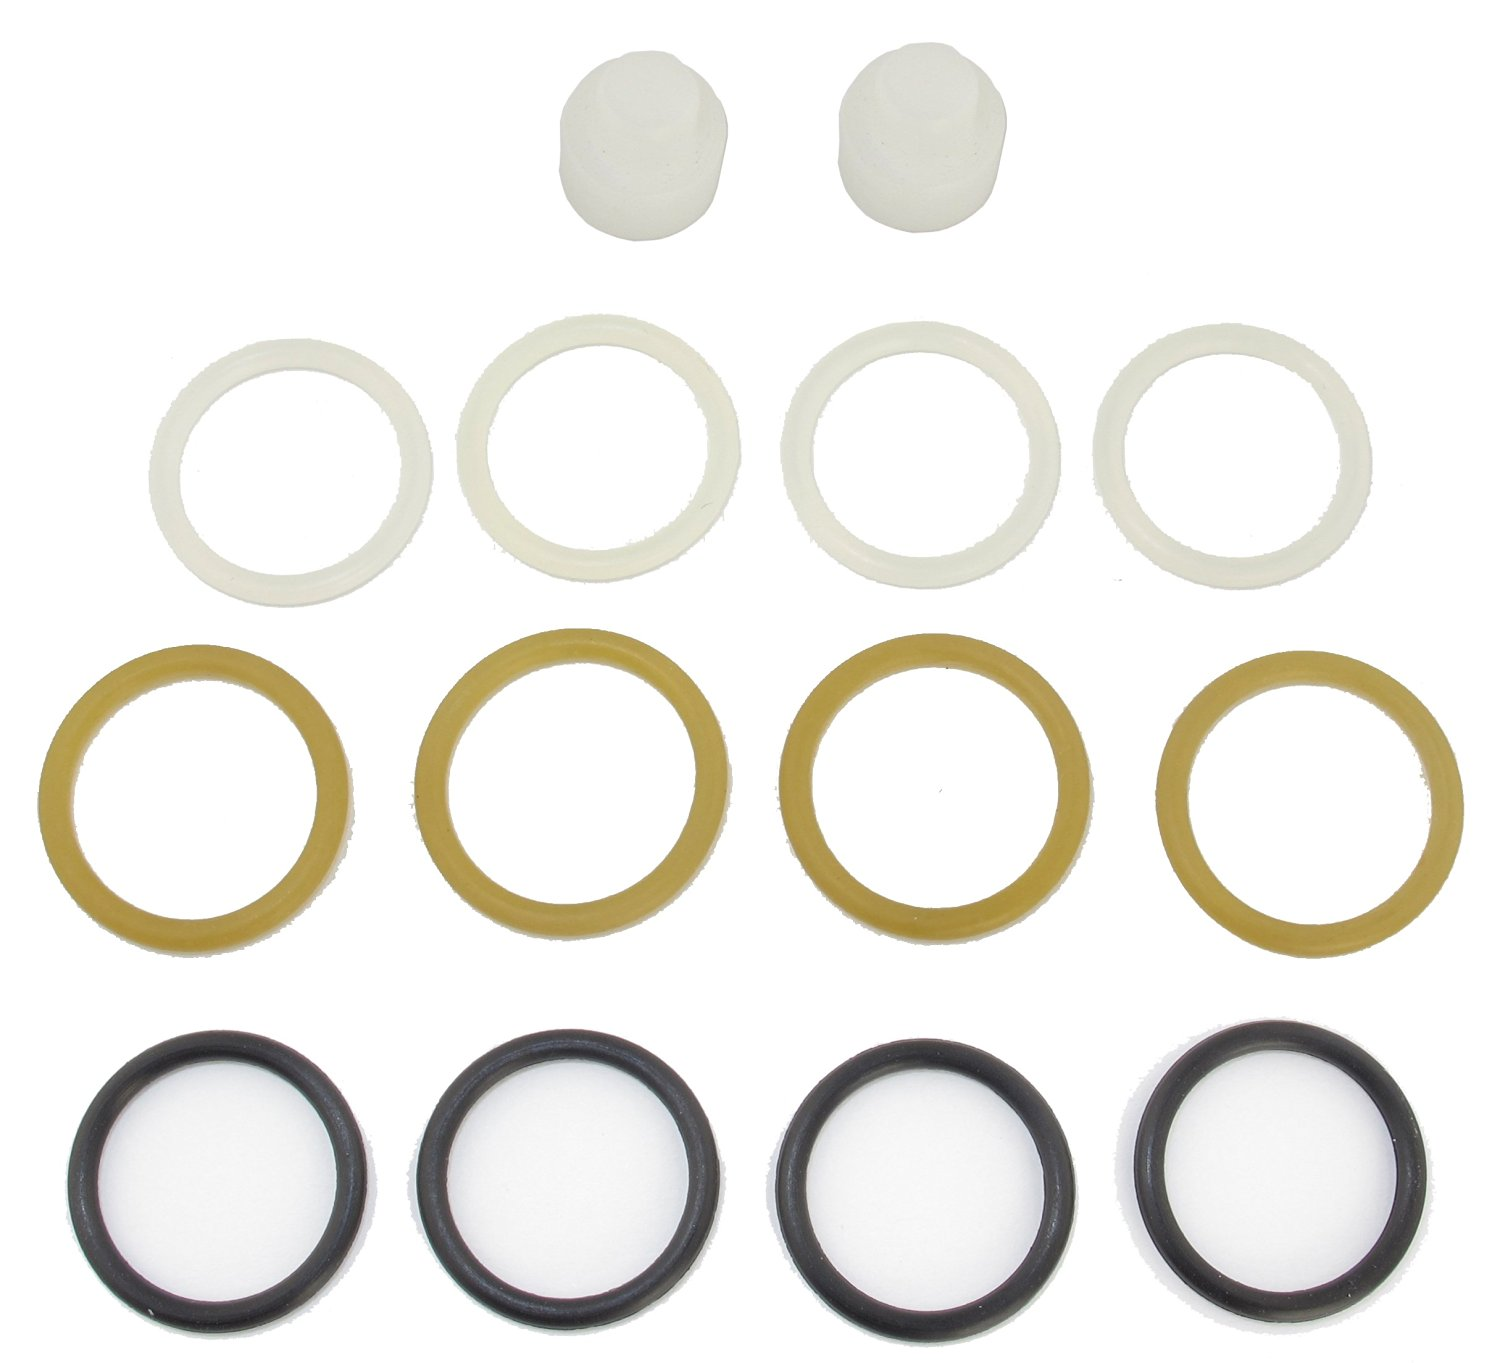 RPM Deluxe Spyder Oring Kit for Pre 1998 Spyders - Most Commonly Needed OEM O-Rings X 2